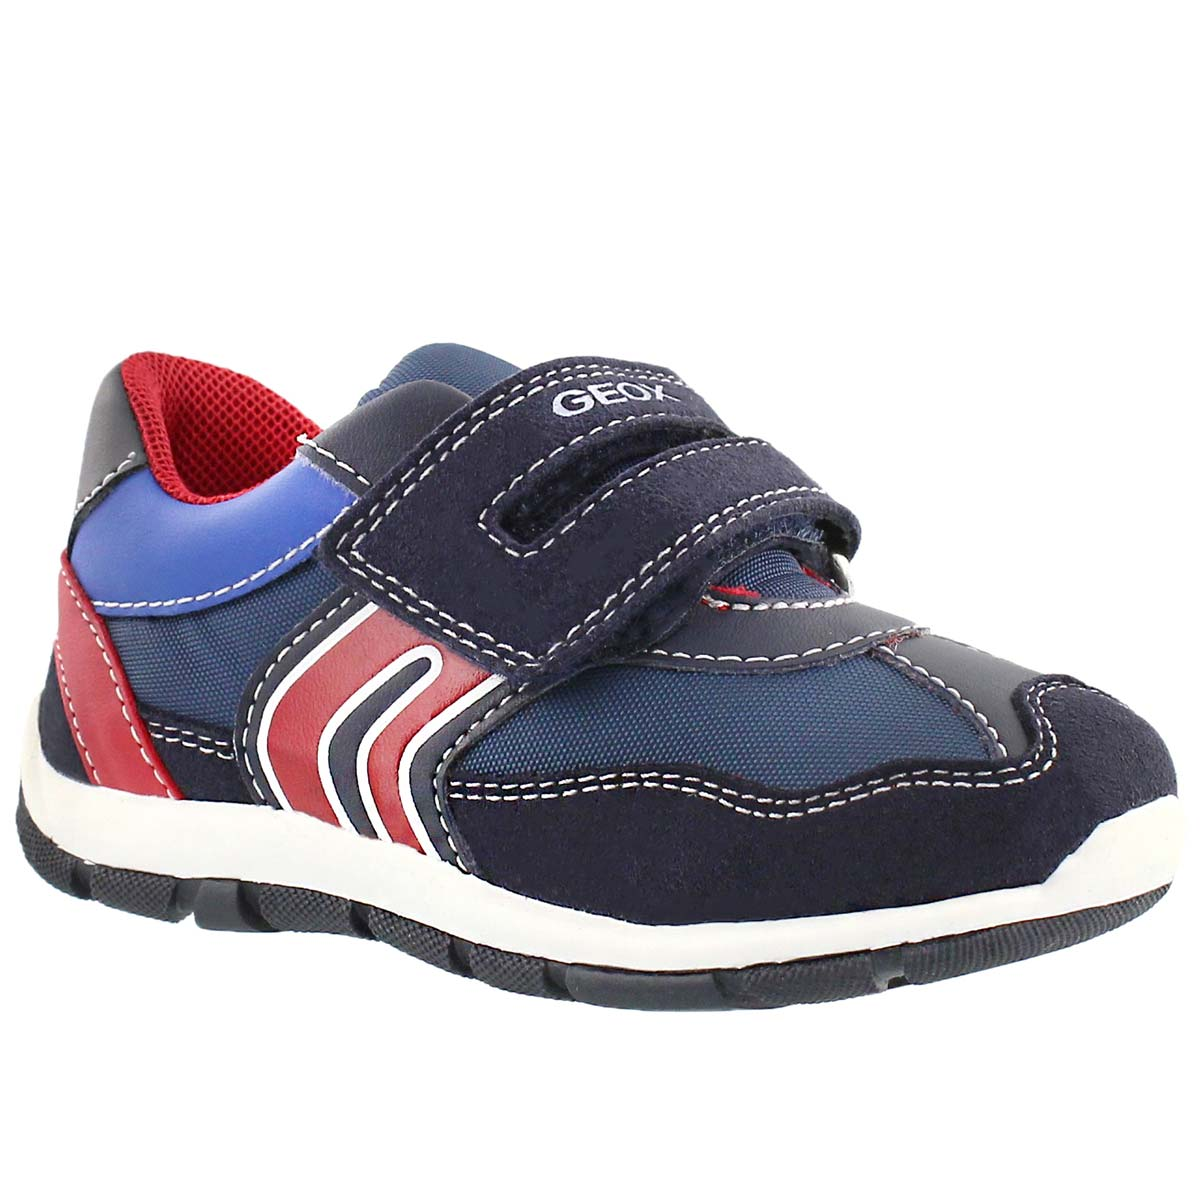 Infants' SHAAX B navy/red double strap sneakers